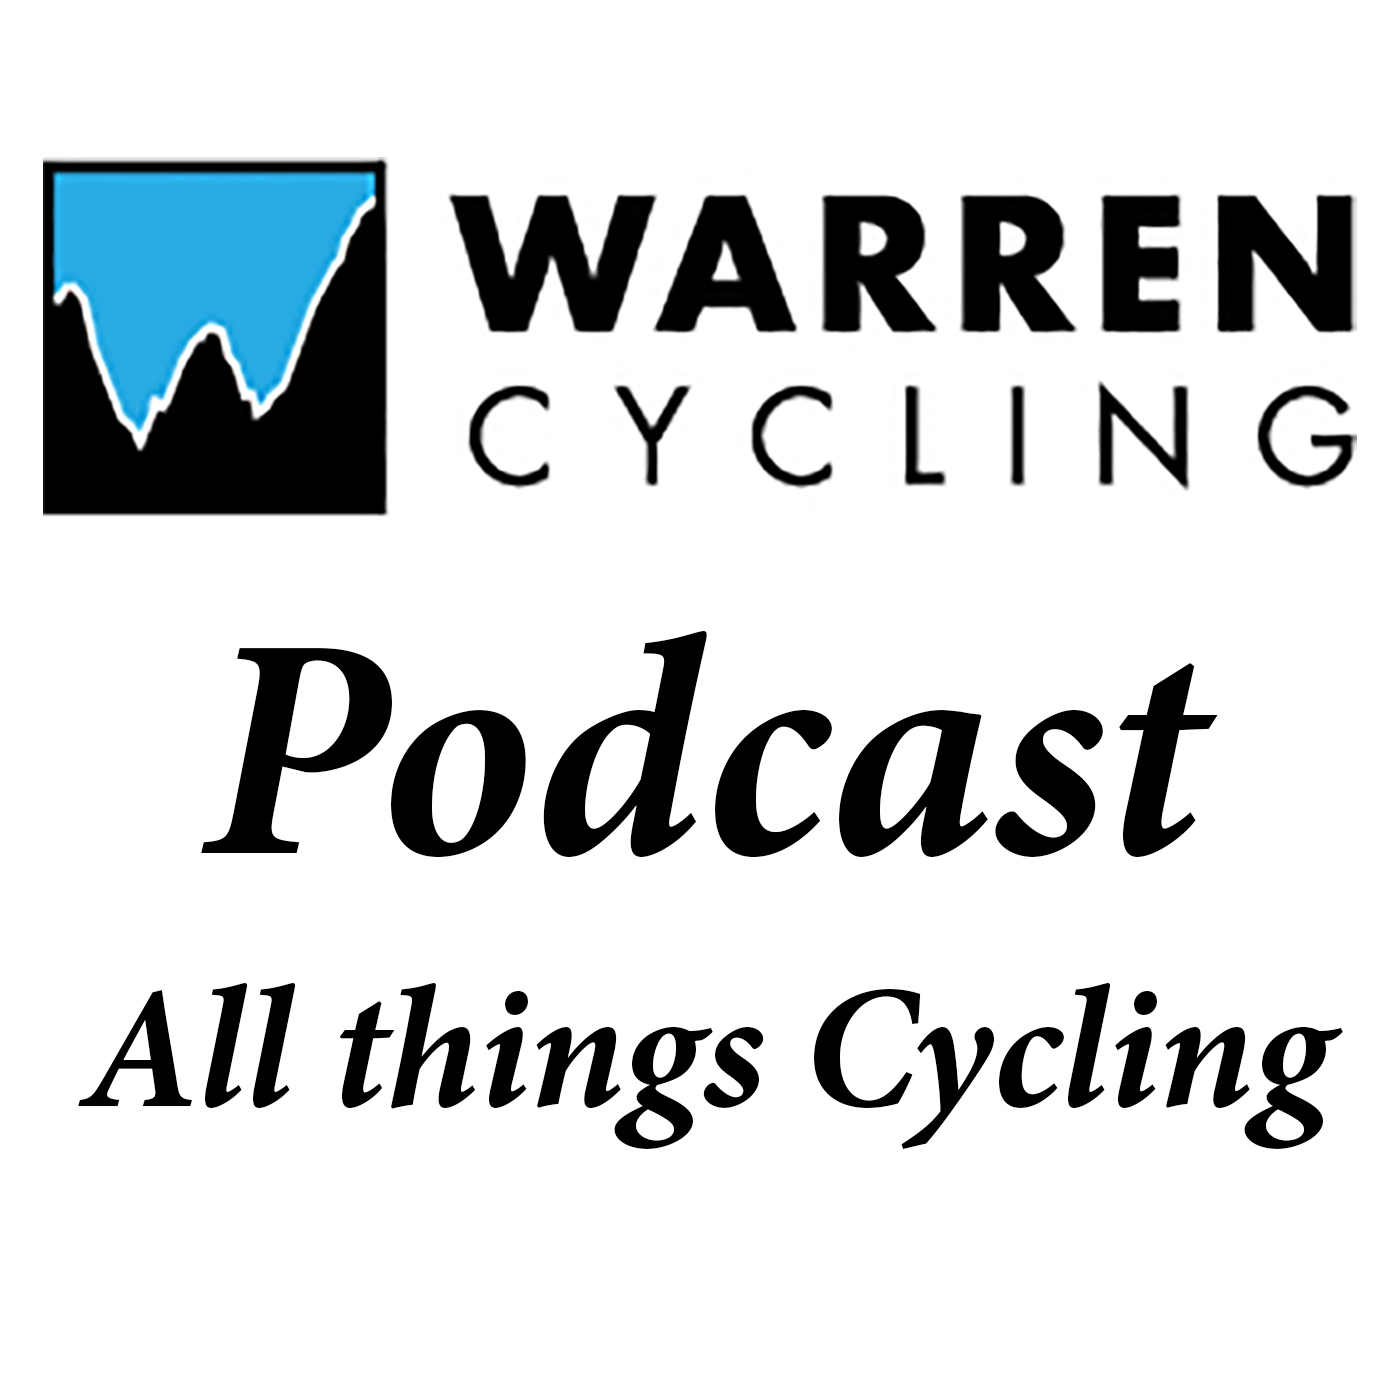 Warren Cycling Podcast Episode 237: Getting Caught in the Snow show art